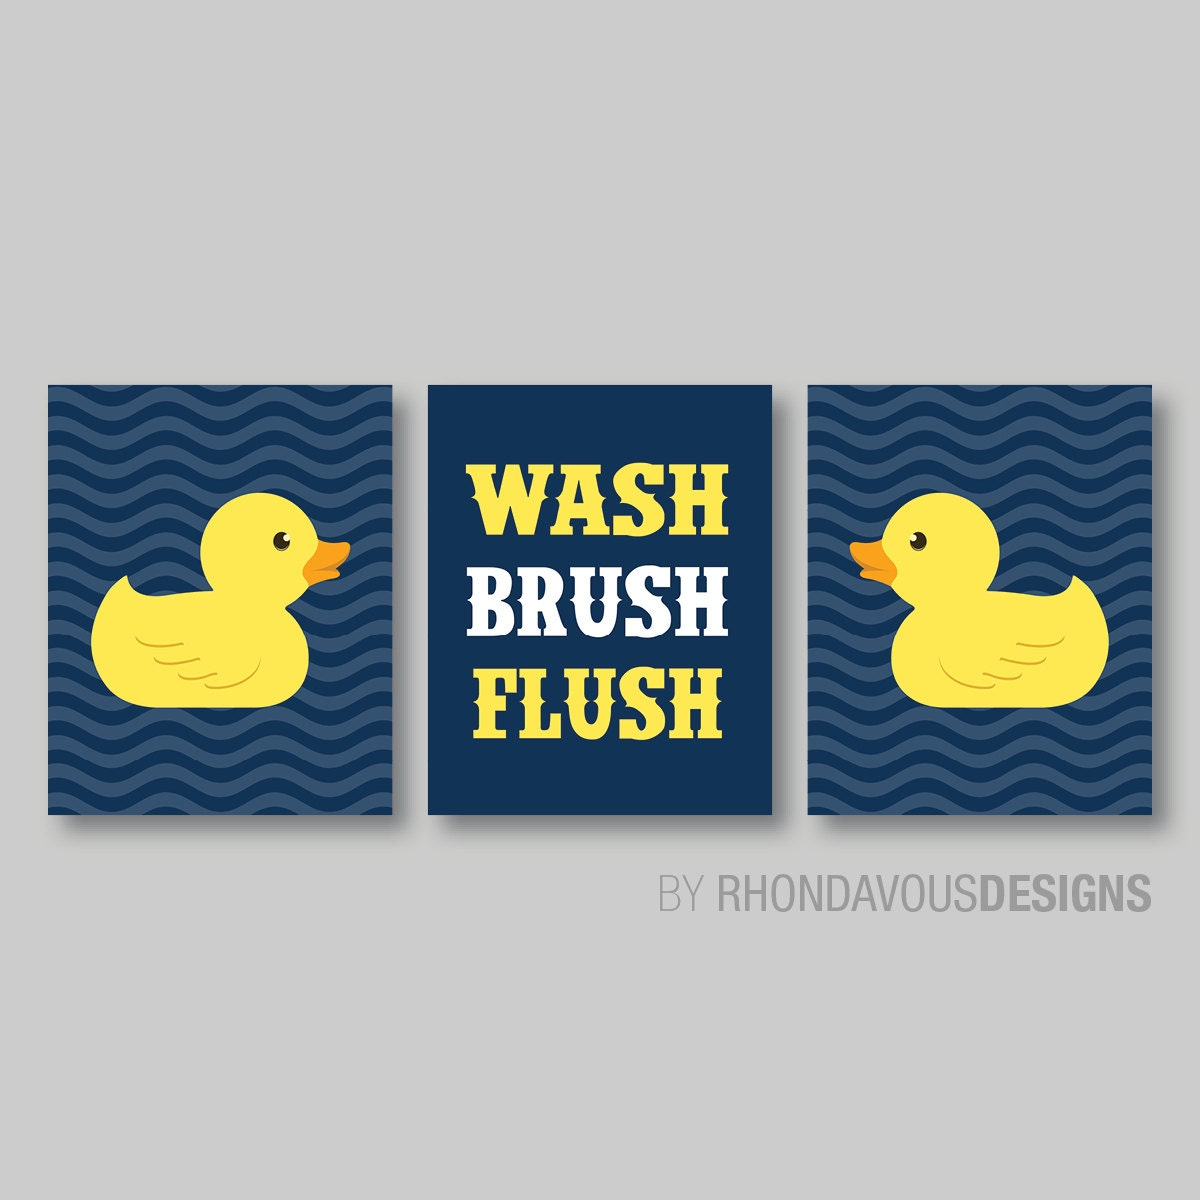 Boy Bathroom Art   Boy Bathroom Decor   Duck Bathroom Art   Child Bathroom    Rubber Duck Bath Decor   Wash Brush Flush   Navy Yellow NS 589